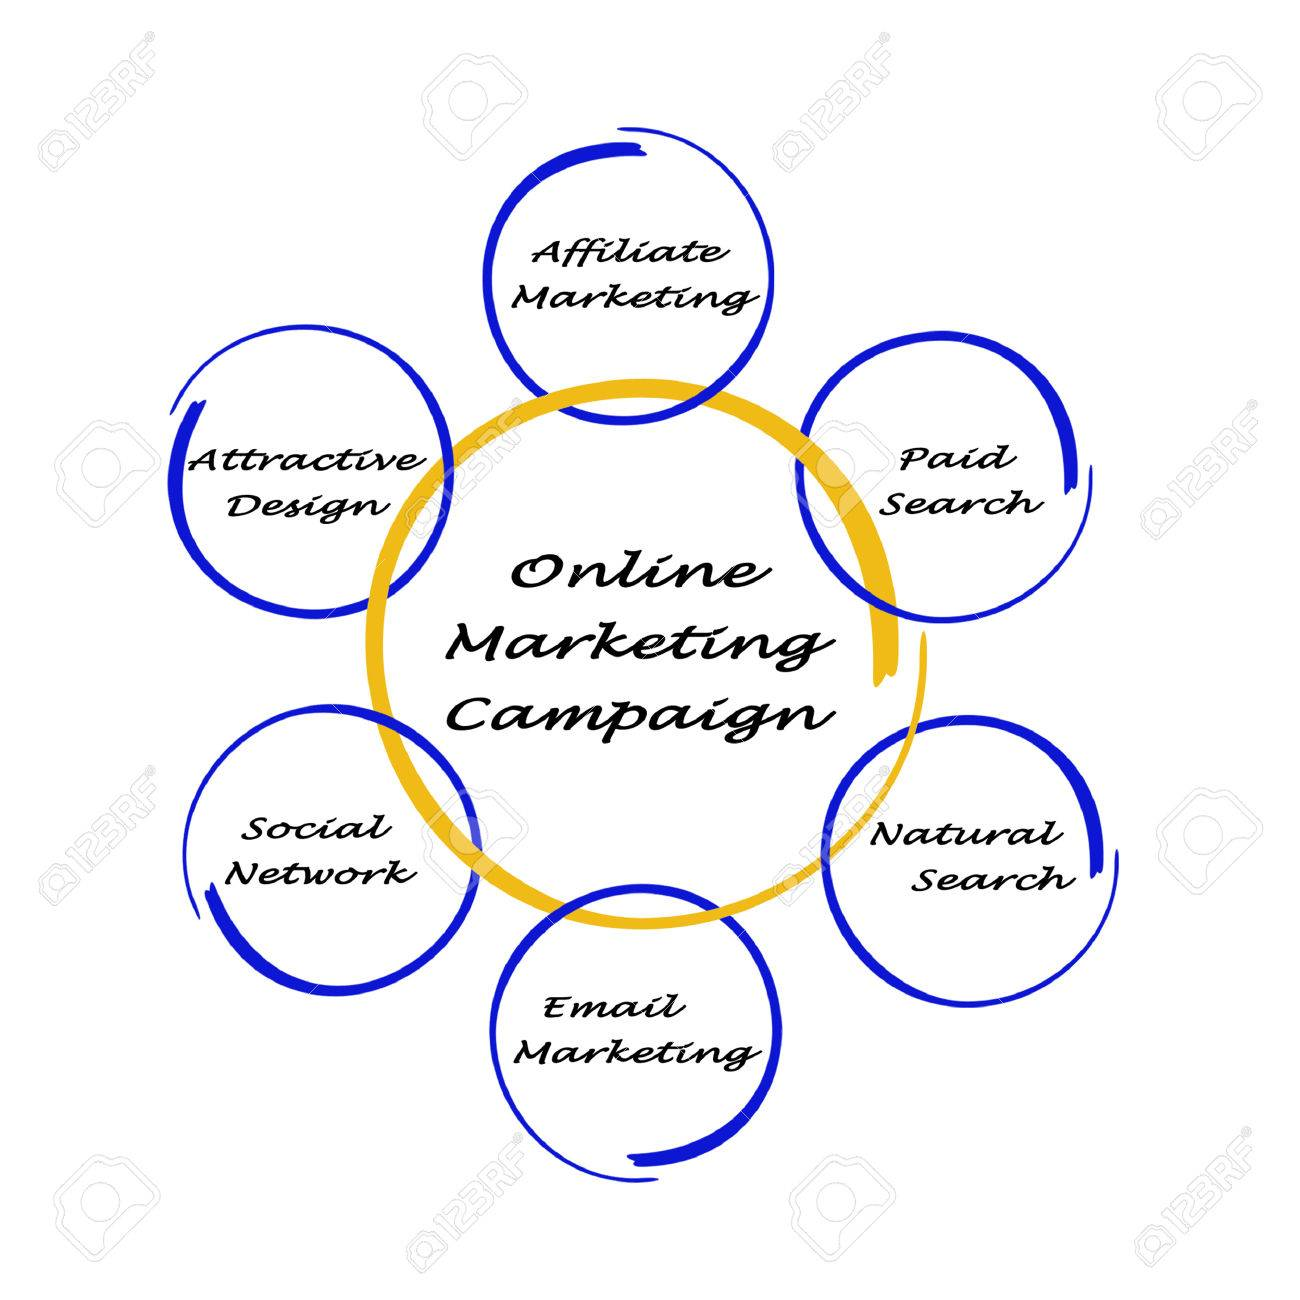 Online marketing campaign stock photo picture and royalty free online marketing campaign stock photo 38566351 ccuart Image collections